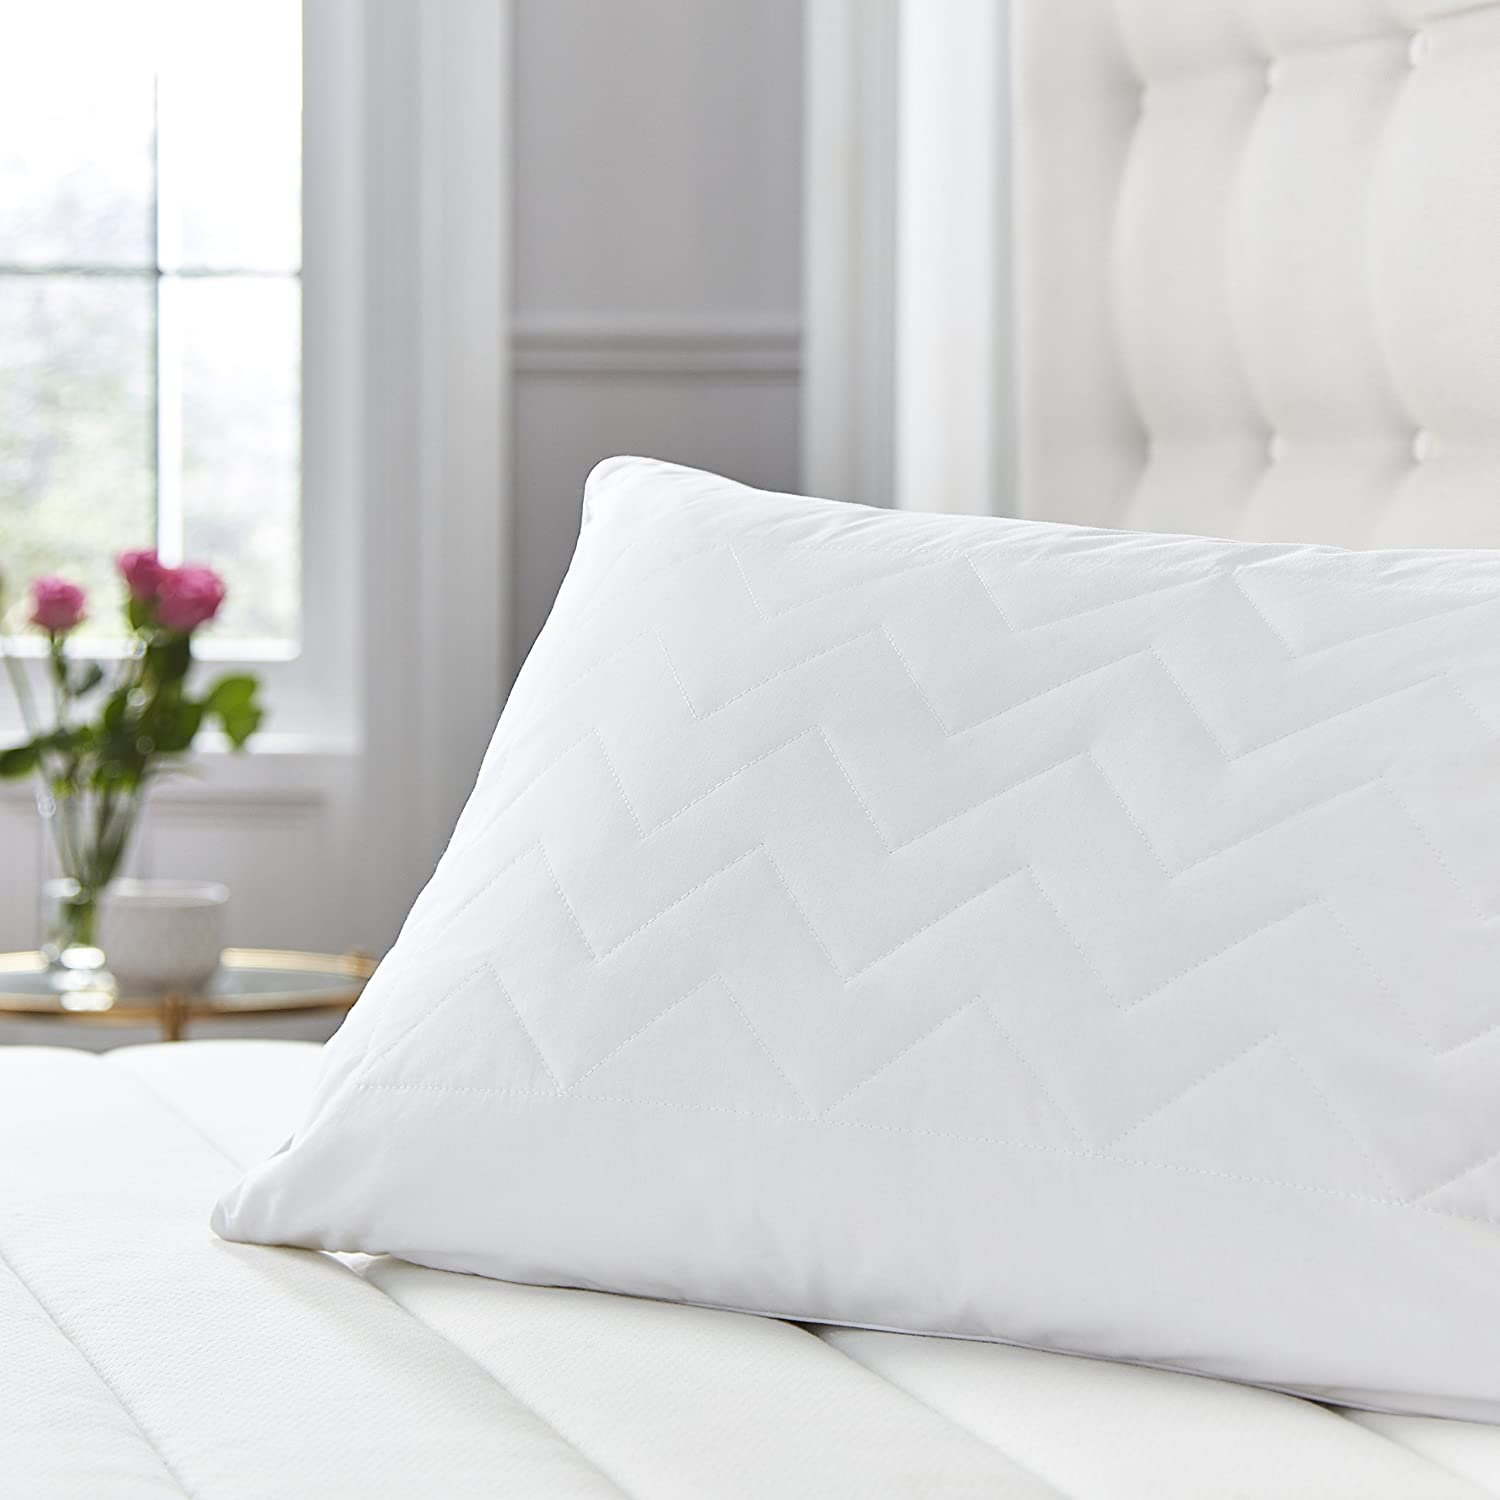 Single Silentnight Quilted Wool Pillow Blend White